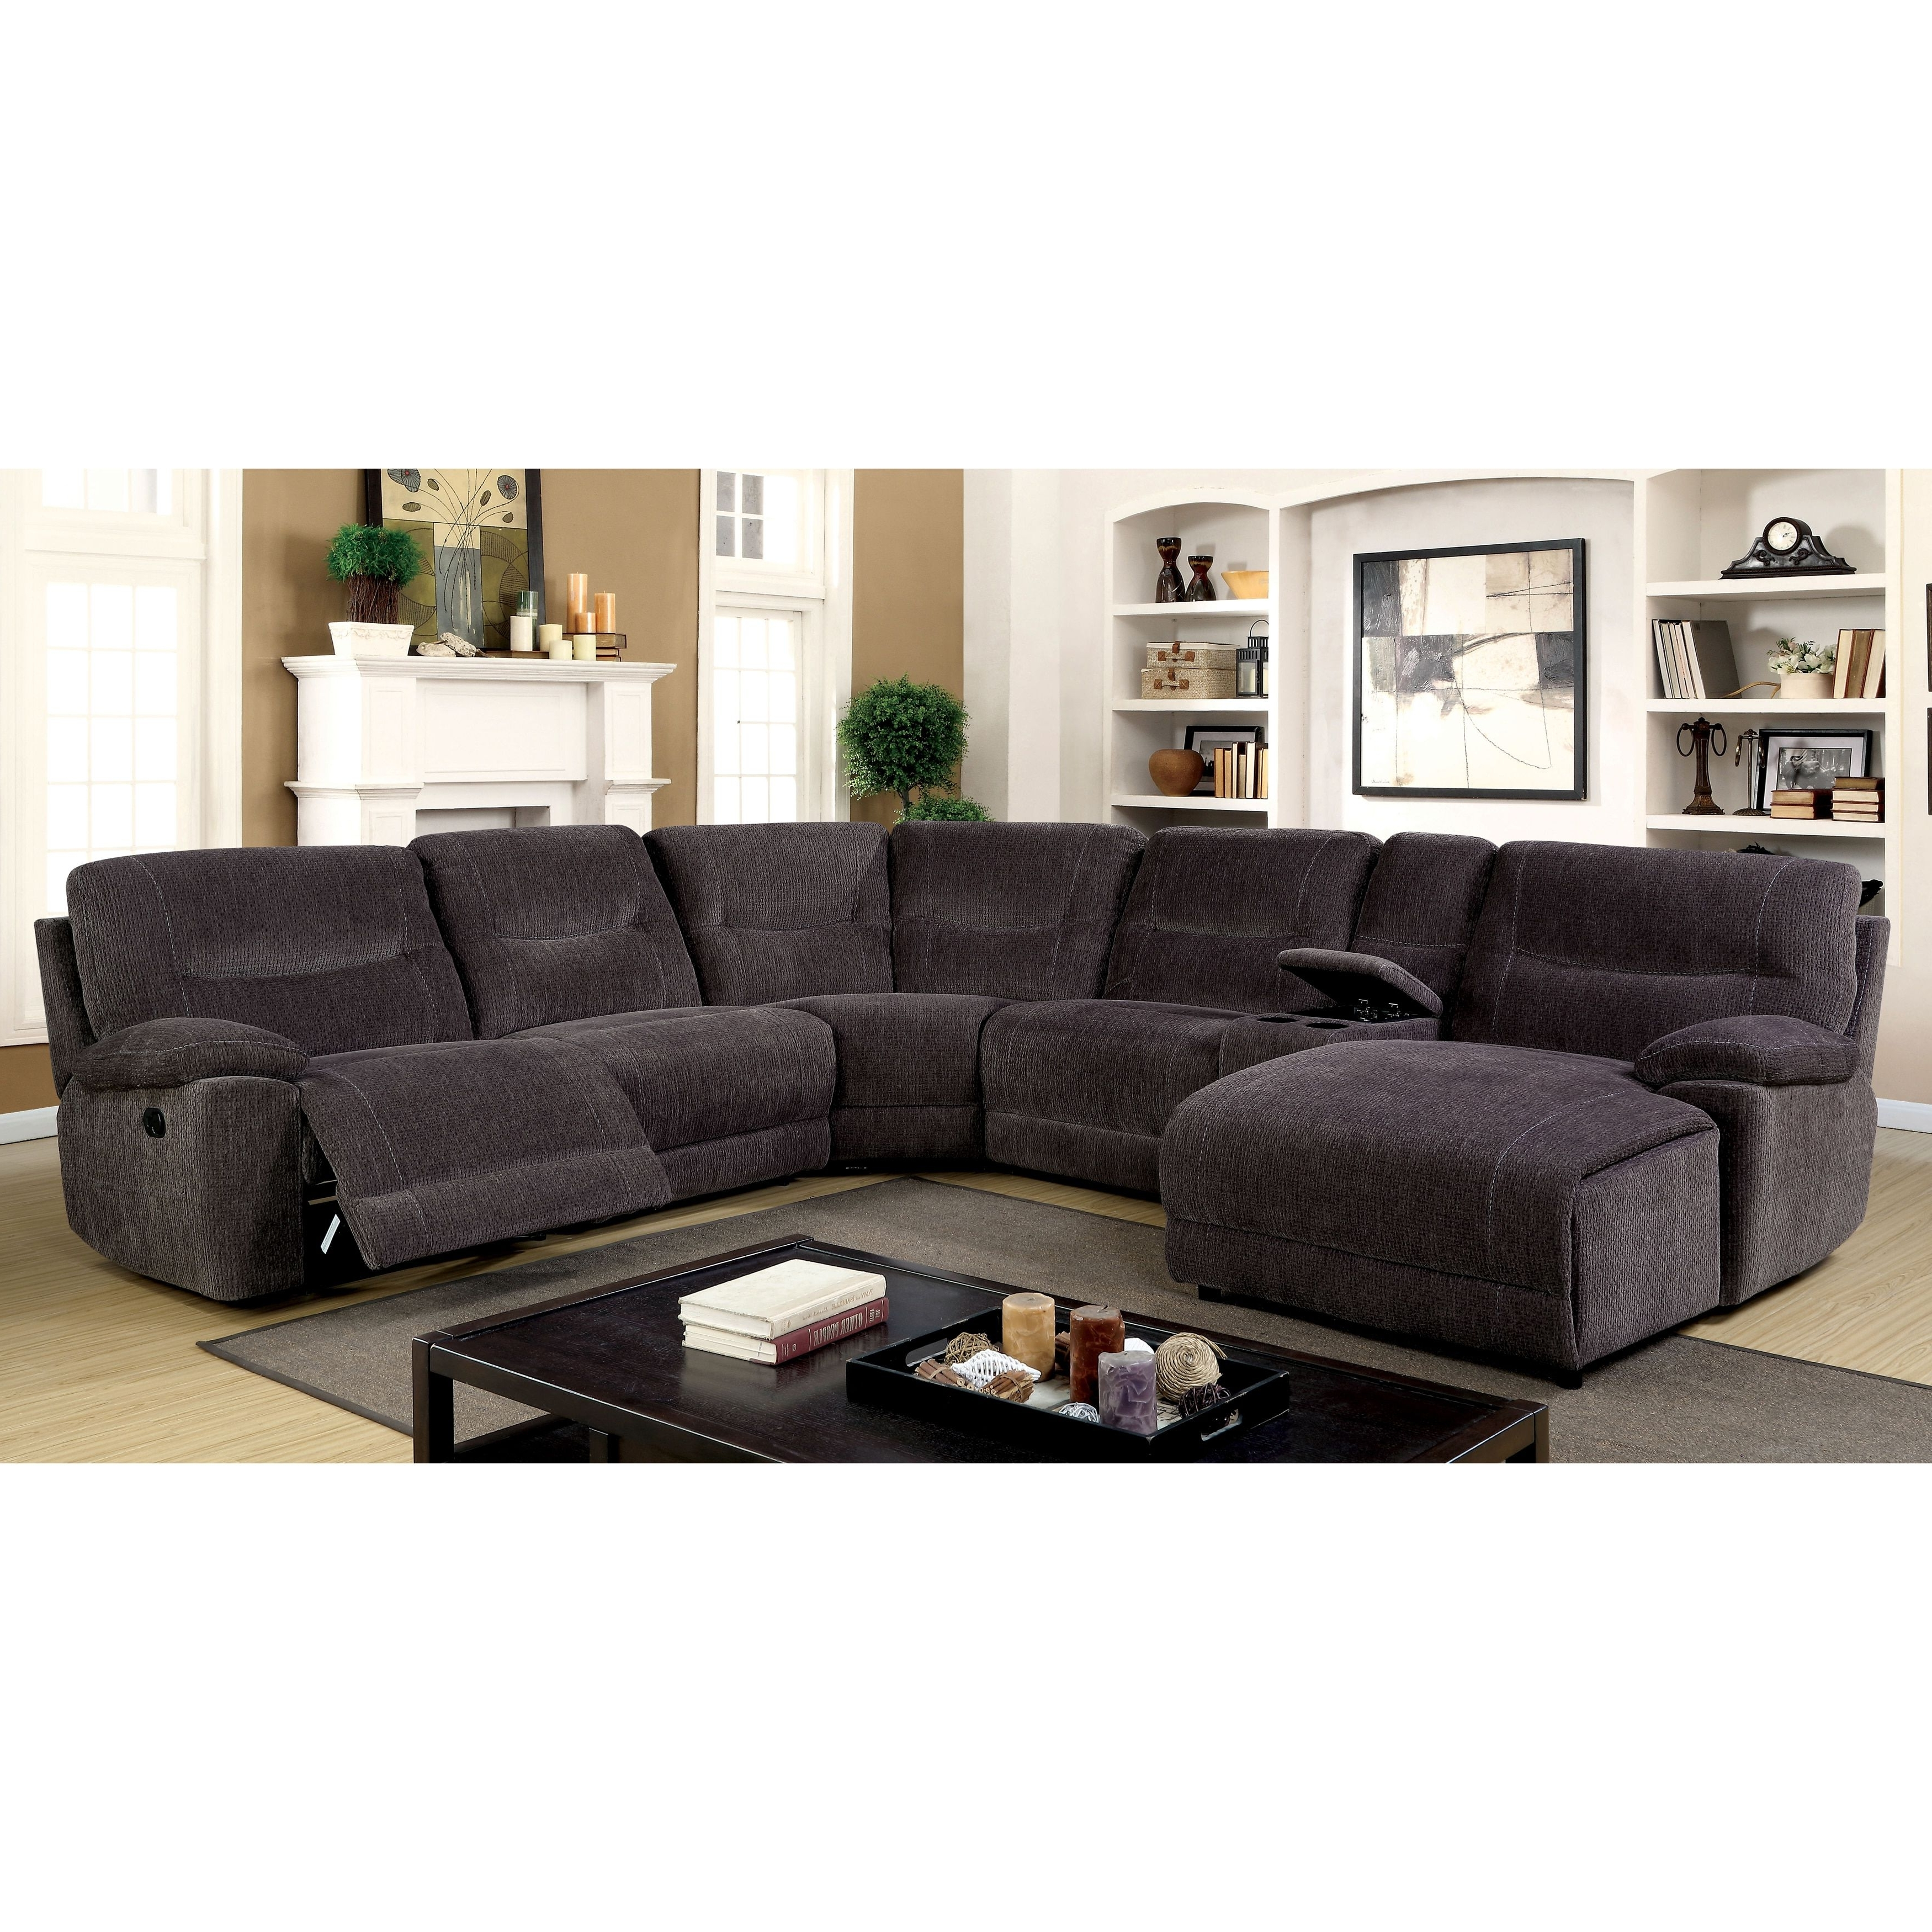 Johnson City Tn Sectional Sofas For Most Recent Furniture Of America Colen Reclining Chenille Fabric Grey L Shaped (Gallery 11 of 15)